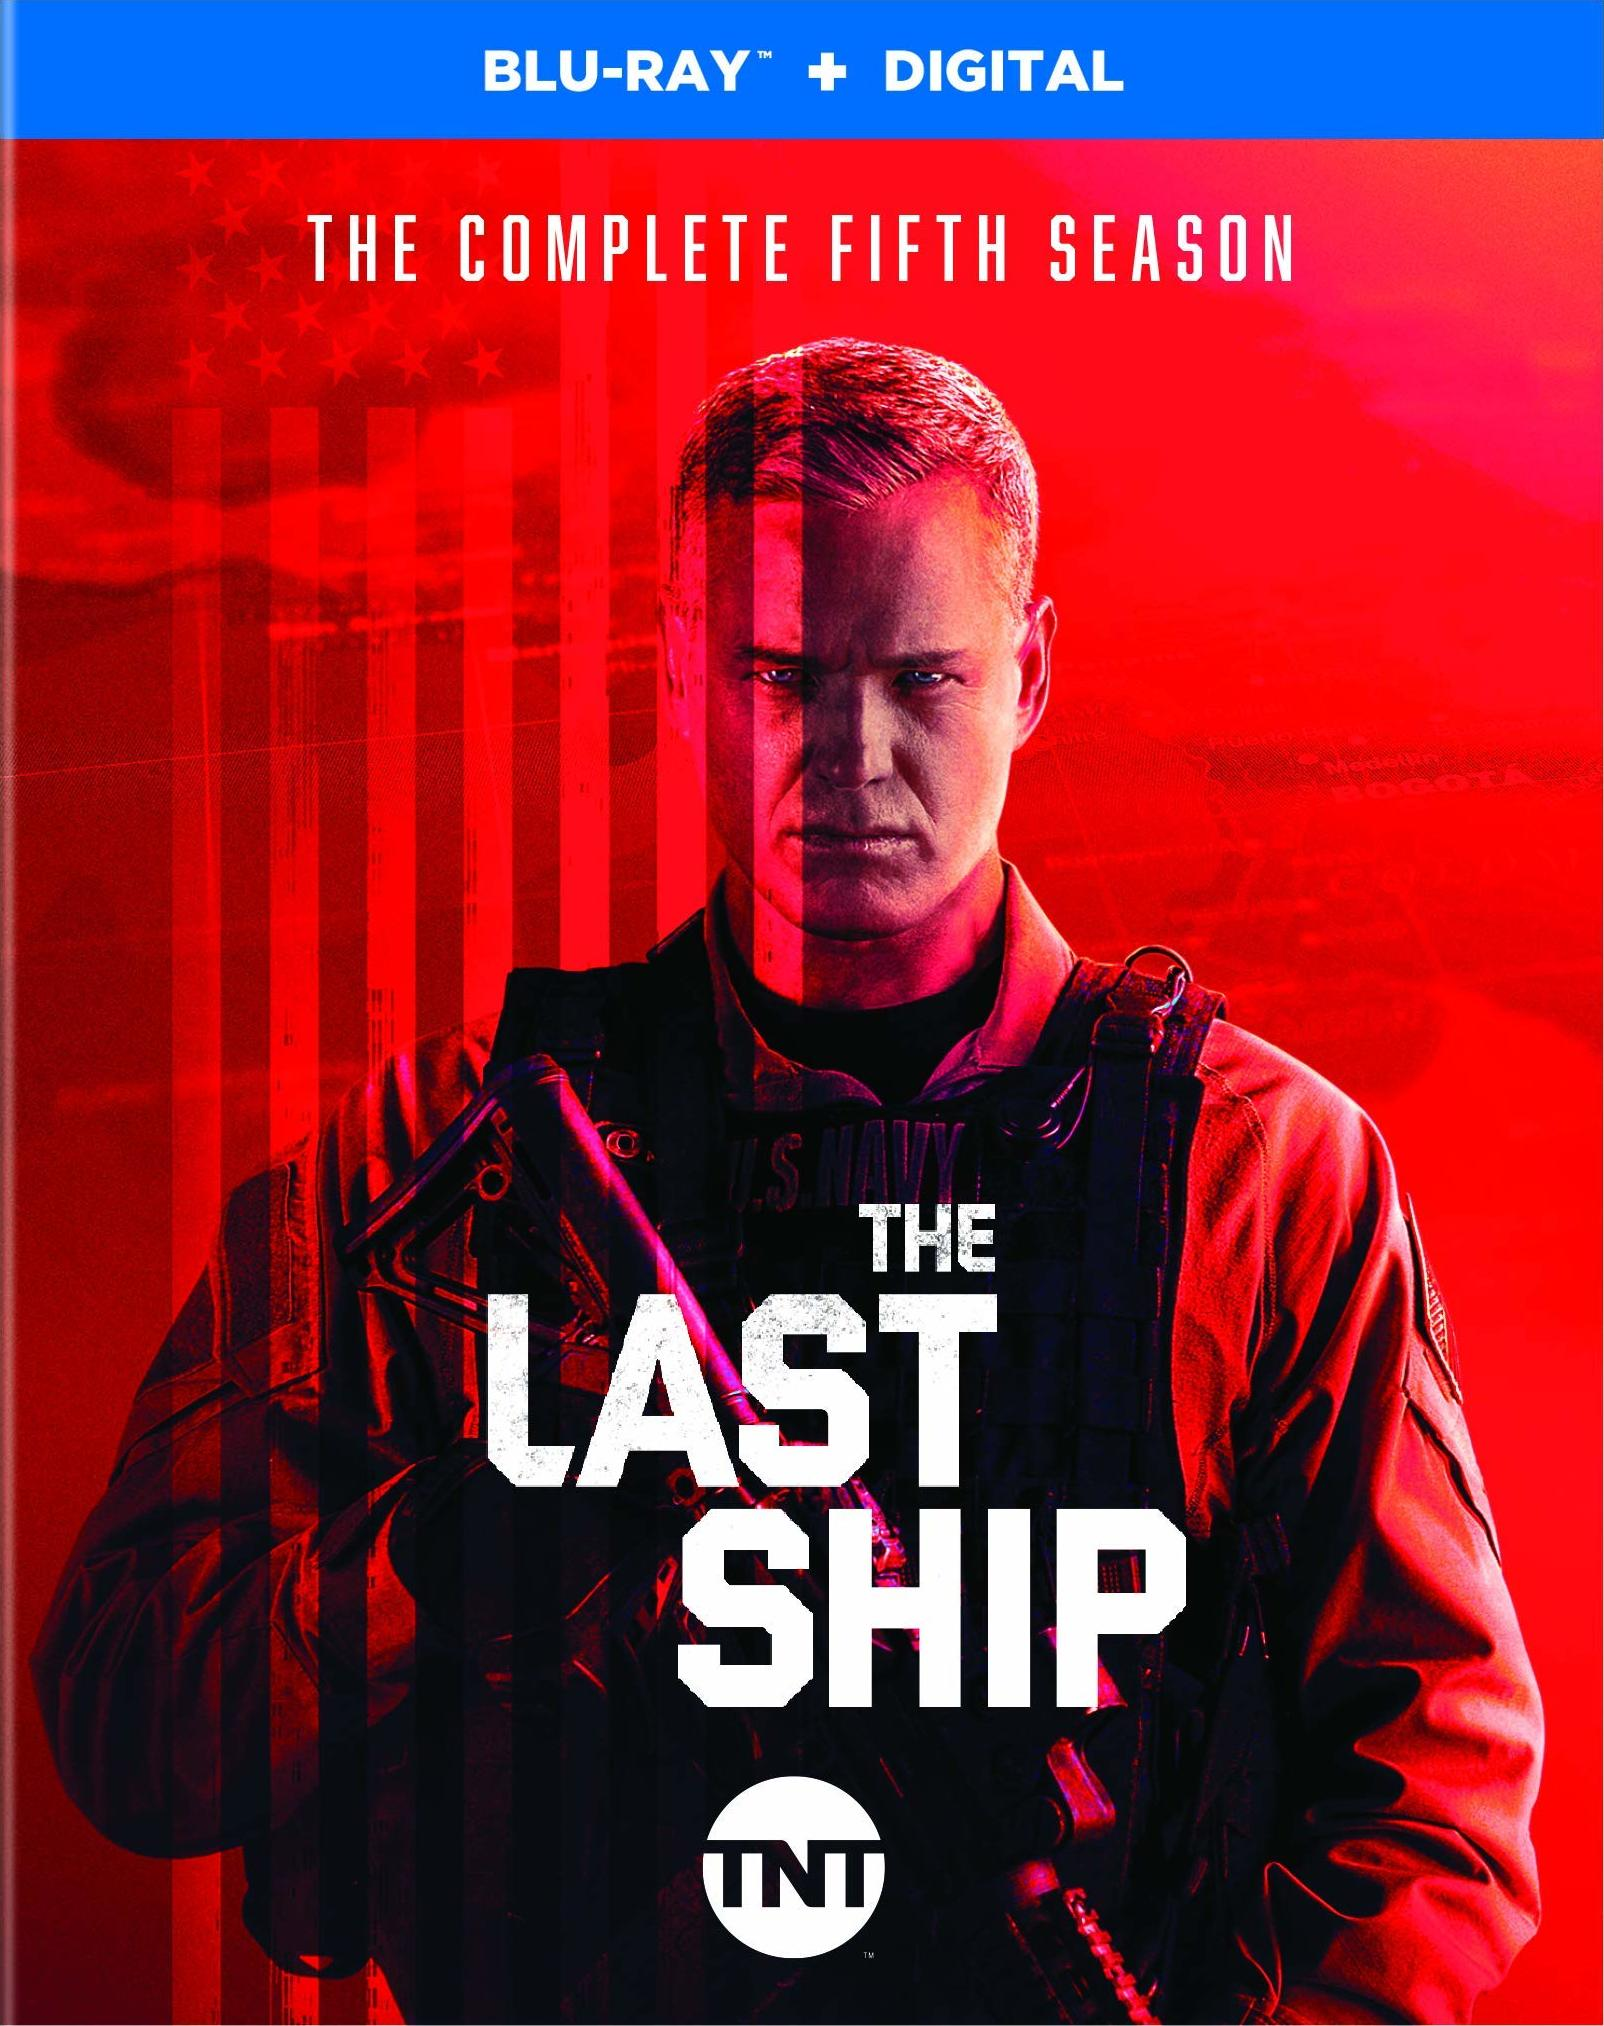 The Last Ship: The Complete Fifth Season (Blu-ray)(Region Free)